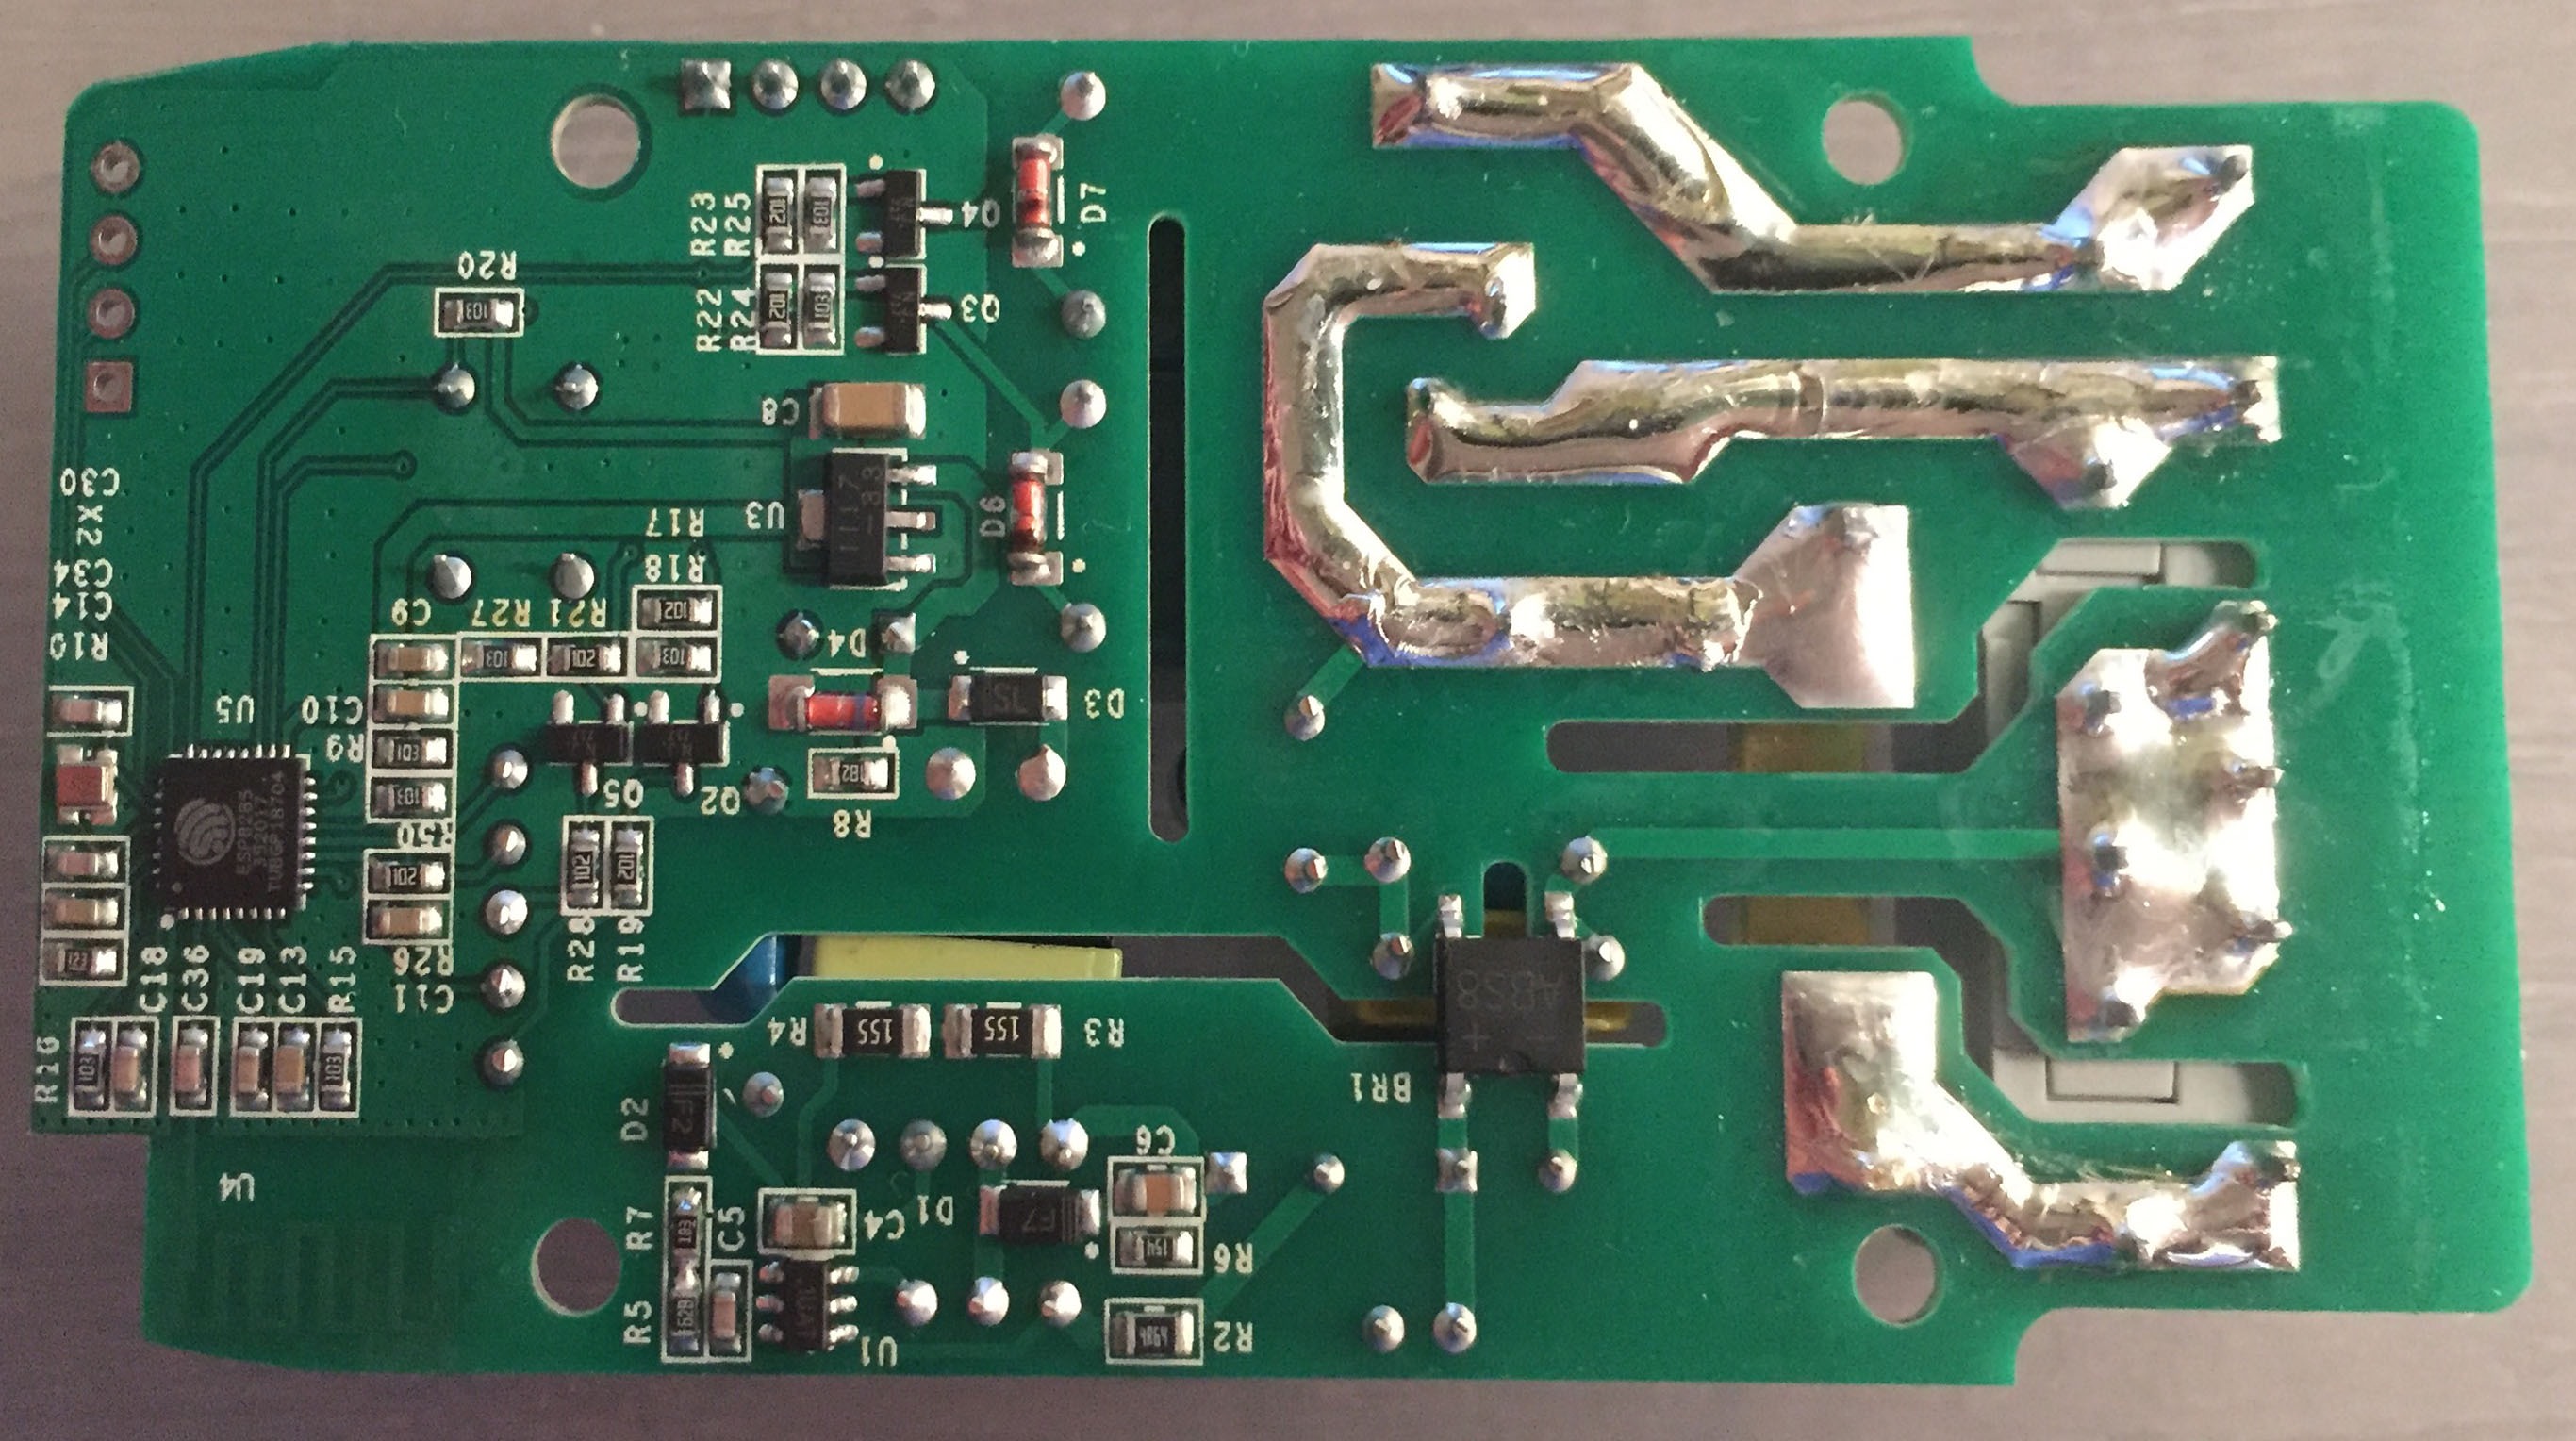 Sonoff Dual - Board - Bottom